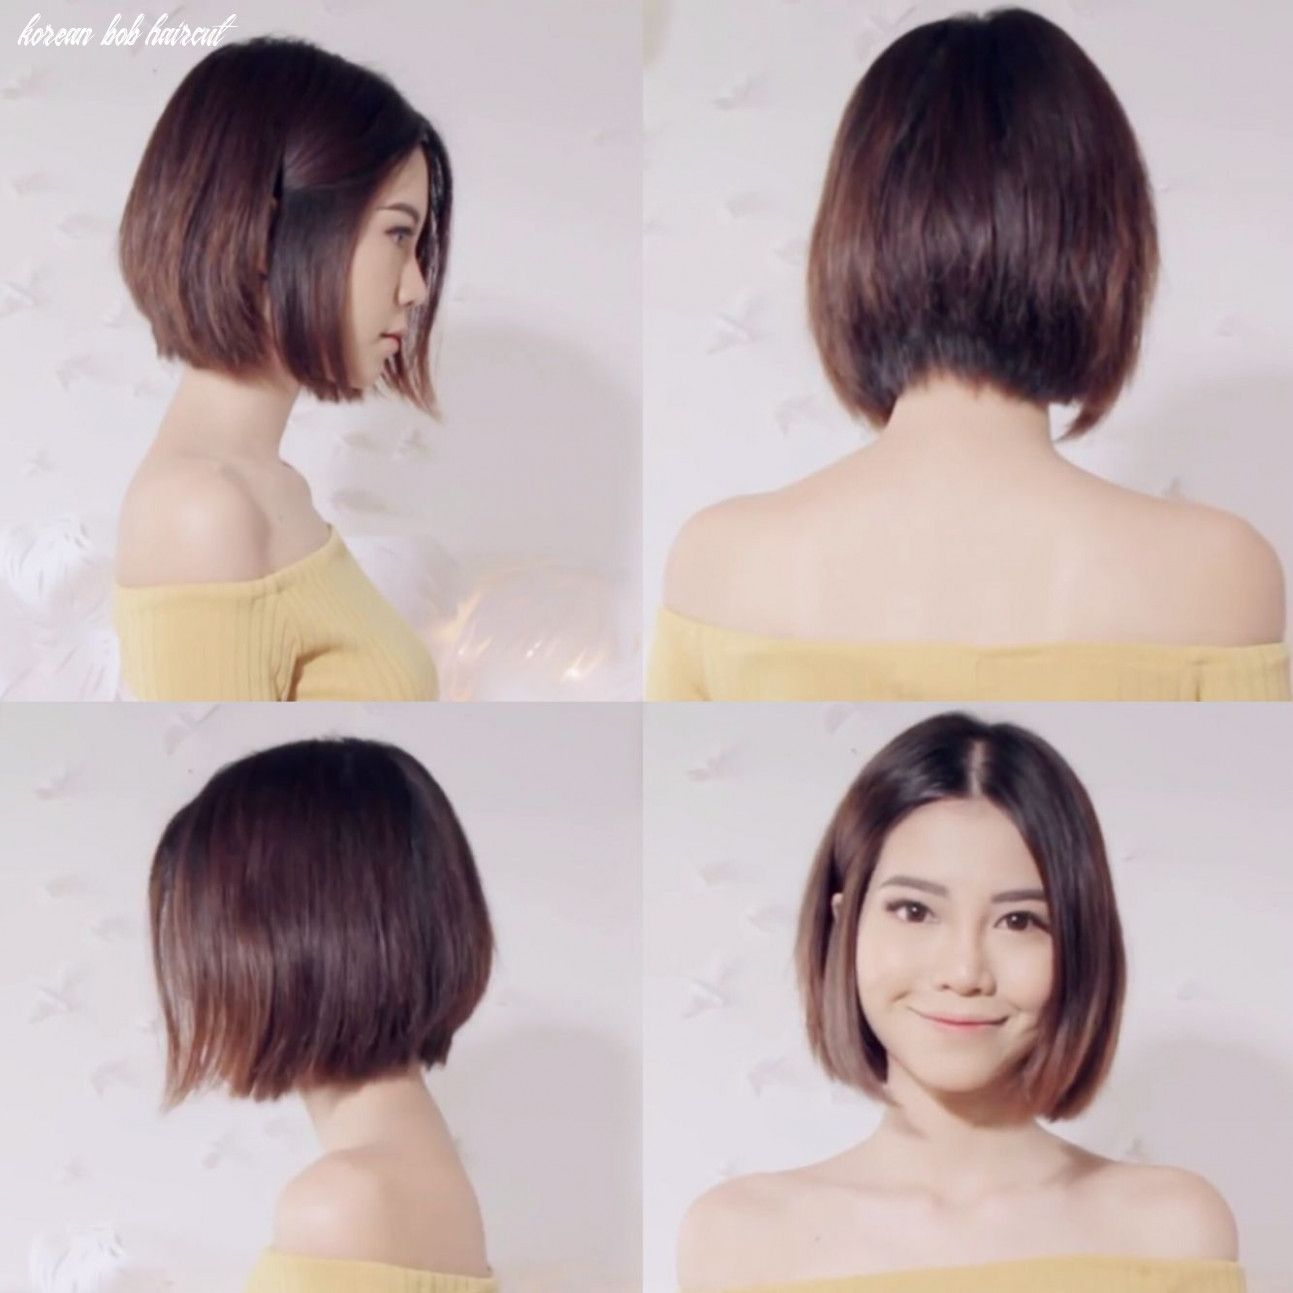 26 Gorgeous Short Hairstyles of Asian Women (Updated 2021) 160731cadb3dc3f018bc56aa5aaf8638